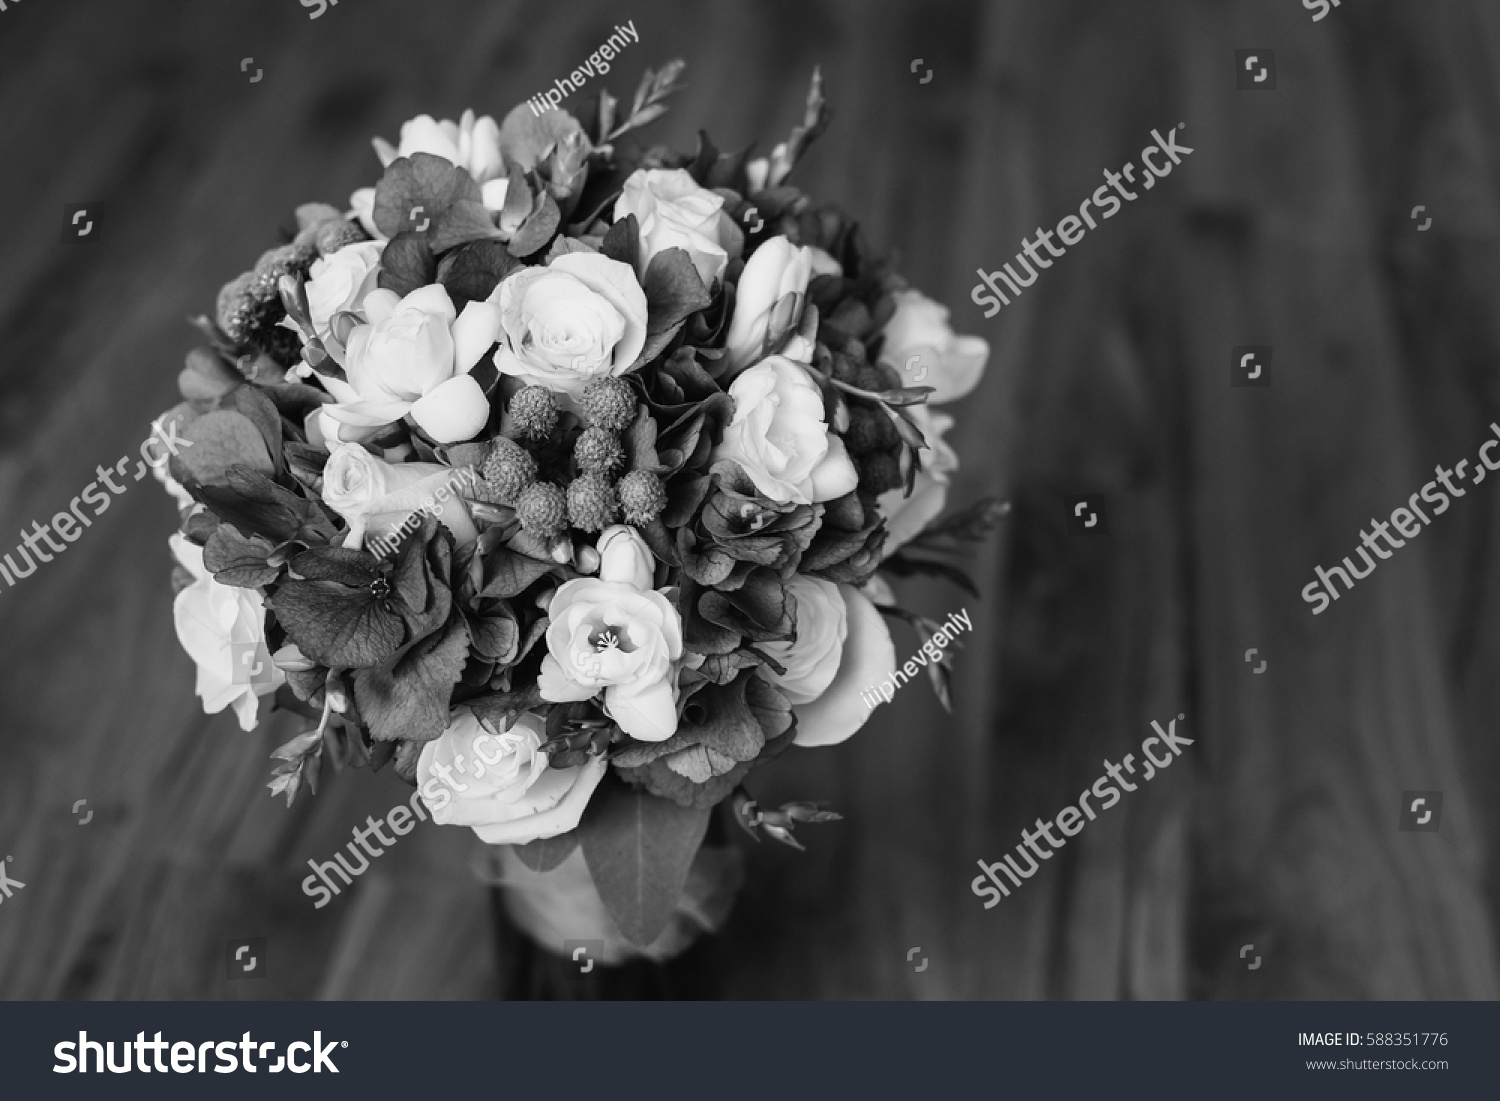 Wedding Bouquet Of White And Blue Flowers In A Transparent Vase